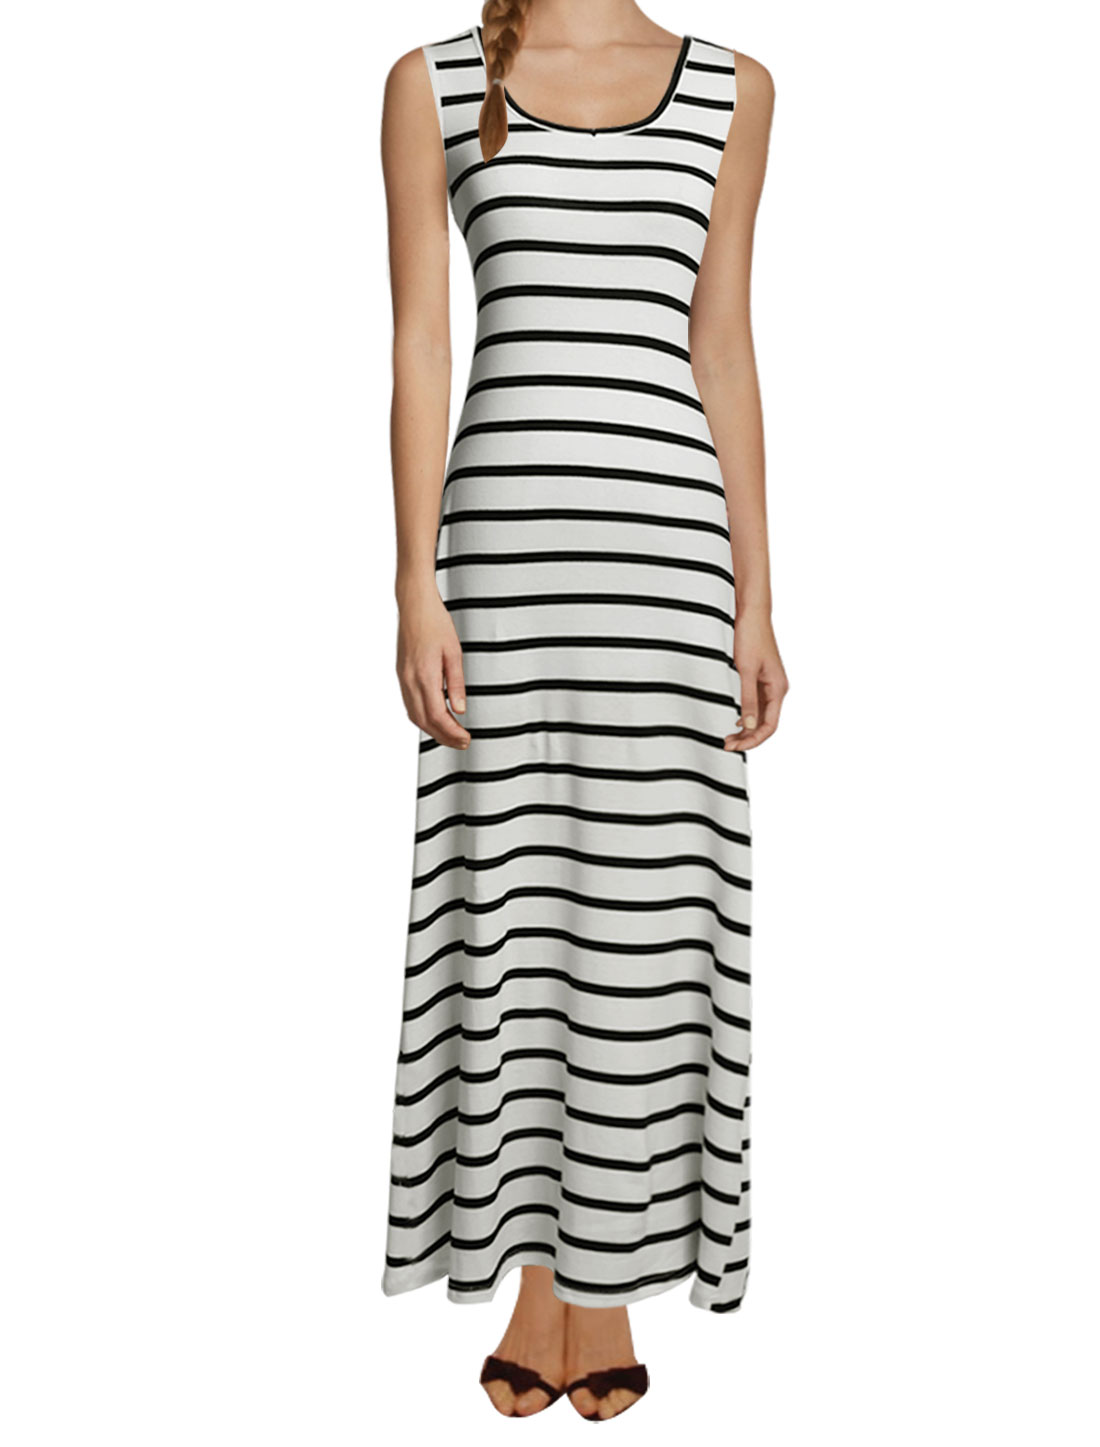 Ladies Scoop Neck Stripes Print Cut Out Back Casual Maxi Dress White Black M